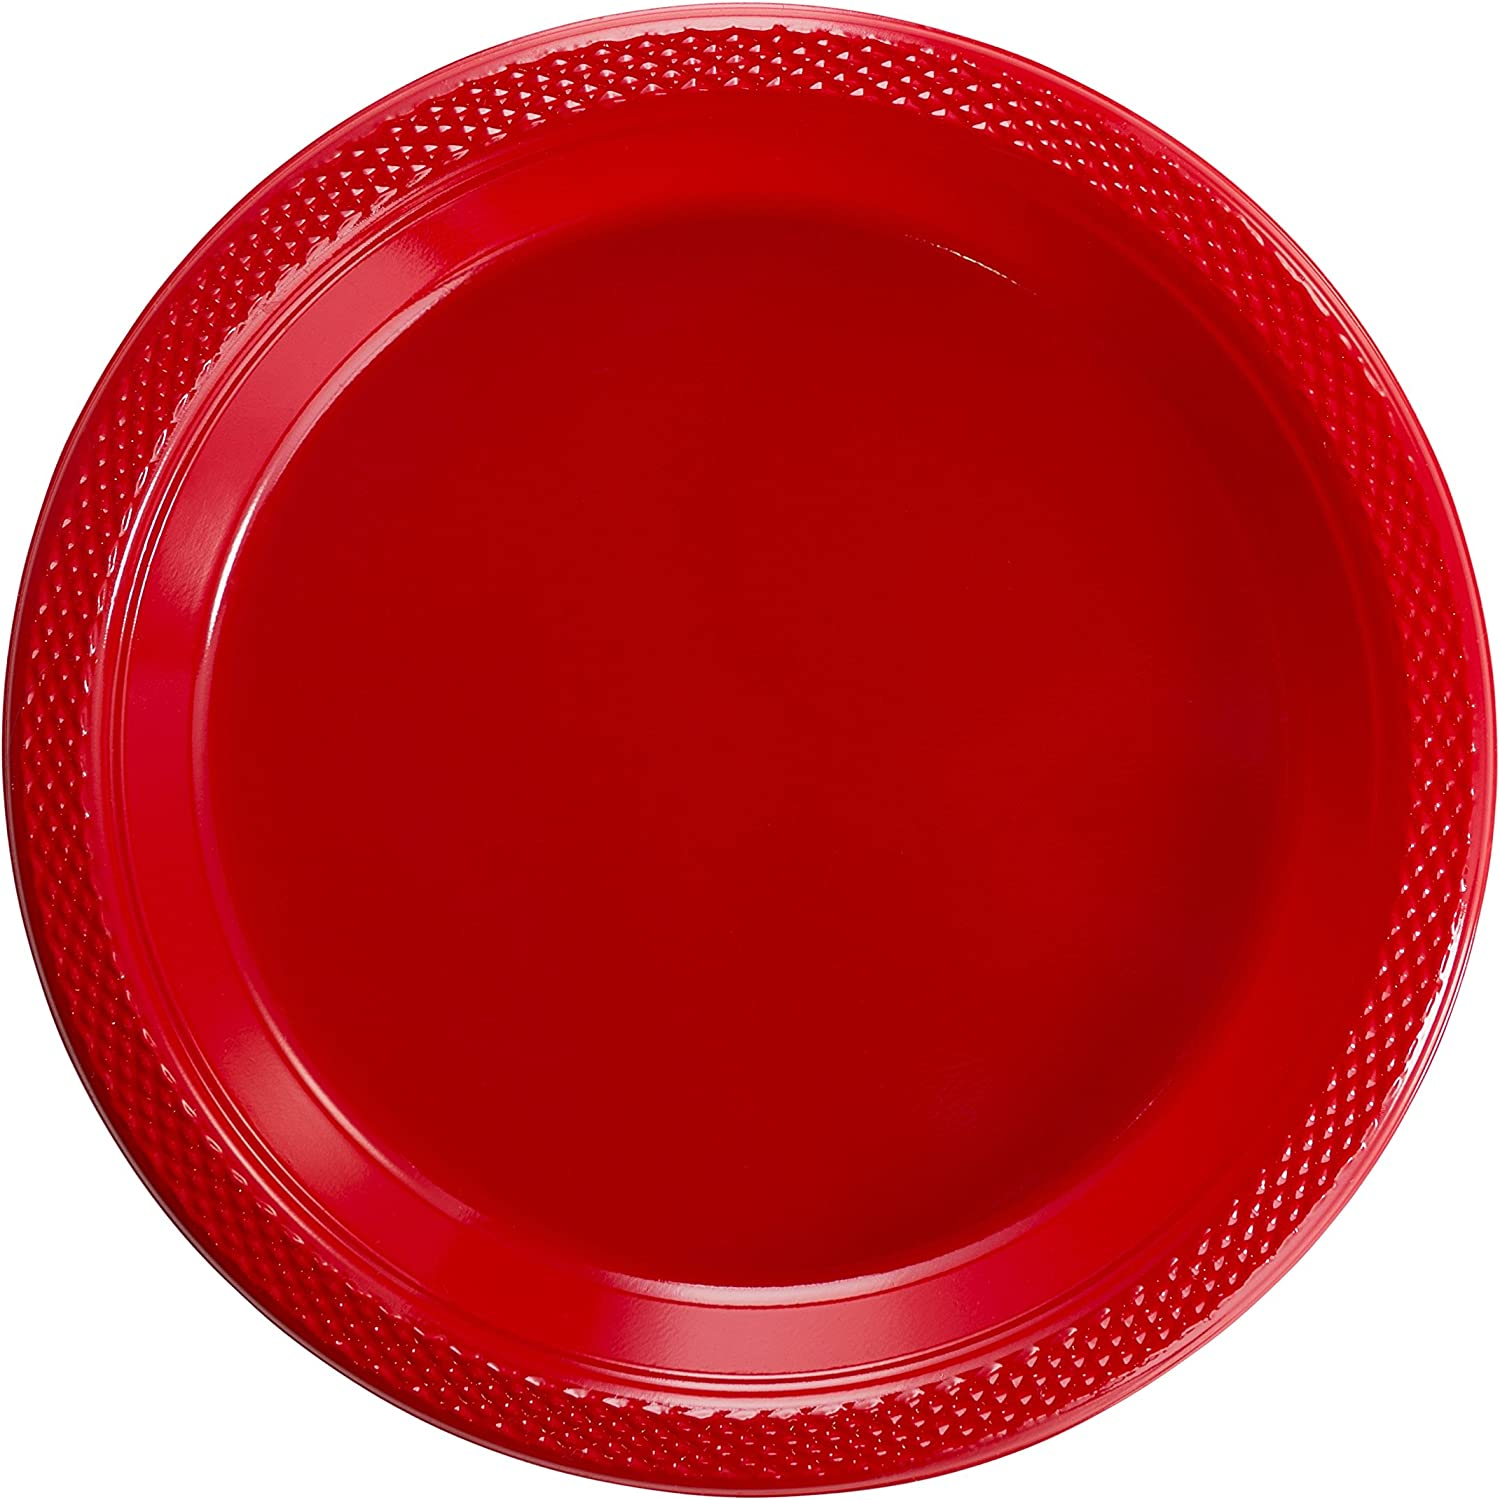 Exquisite 9 Inch. Red Plastic Plates  Solid color Disposable Plates  50 Count